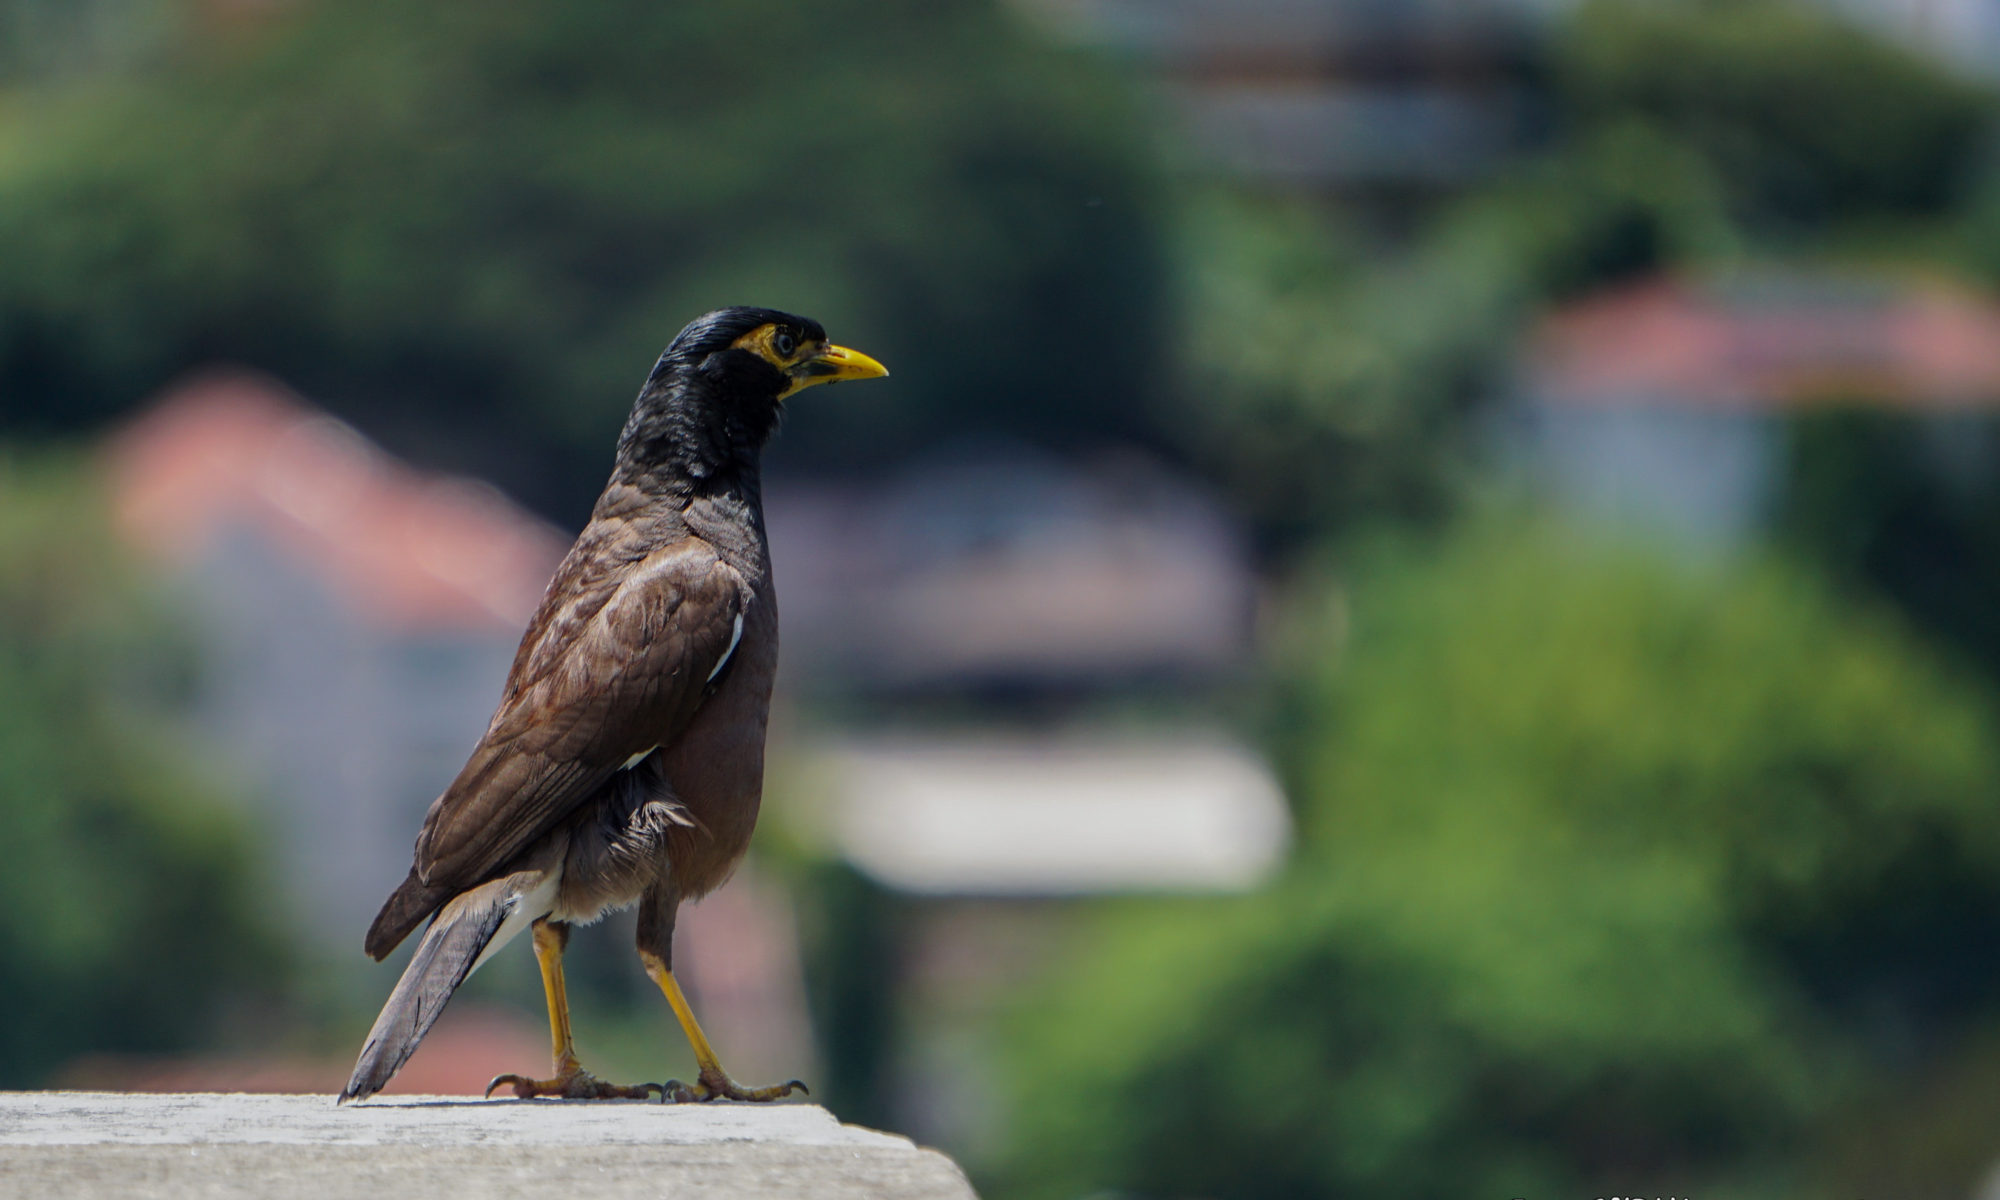 Common Myna enjoying the view